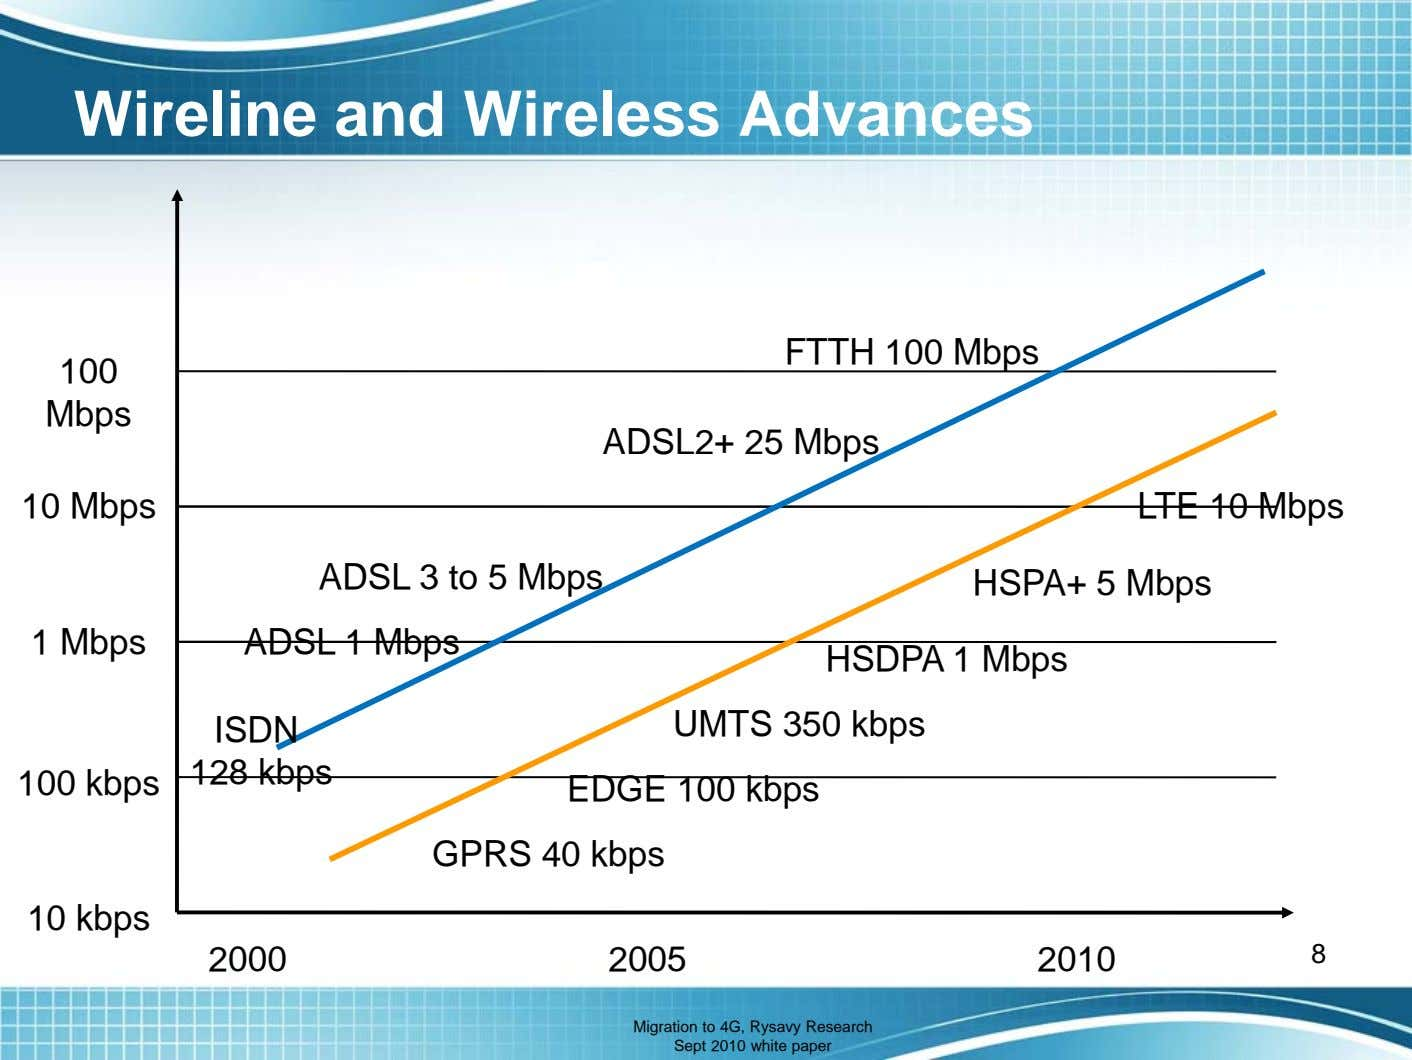 Wireline and Wireless Advances FTTH 100 Mbps 100 Mbps ADSL2+ 25 Mbps 10 Mbps LTE